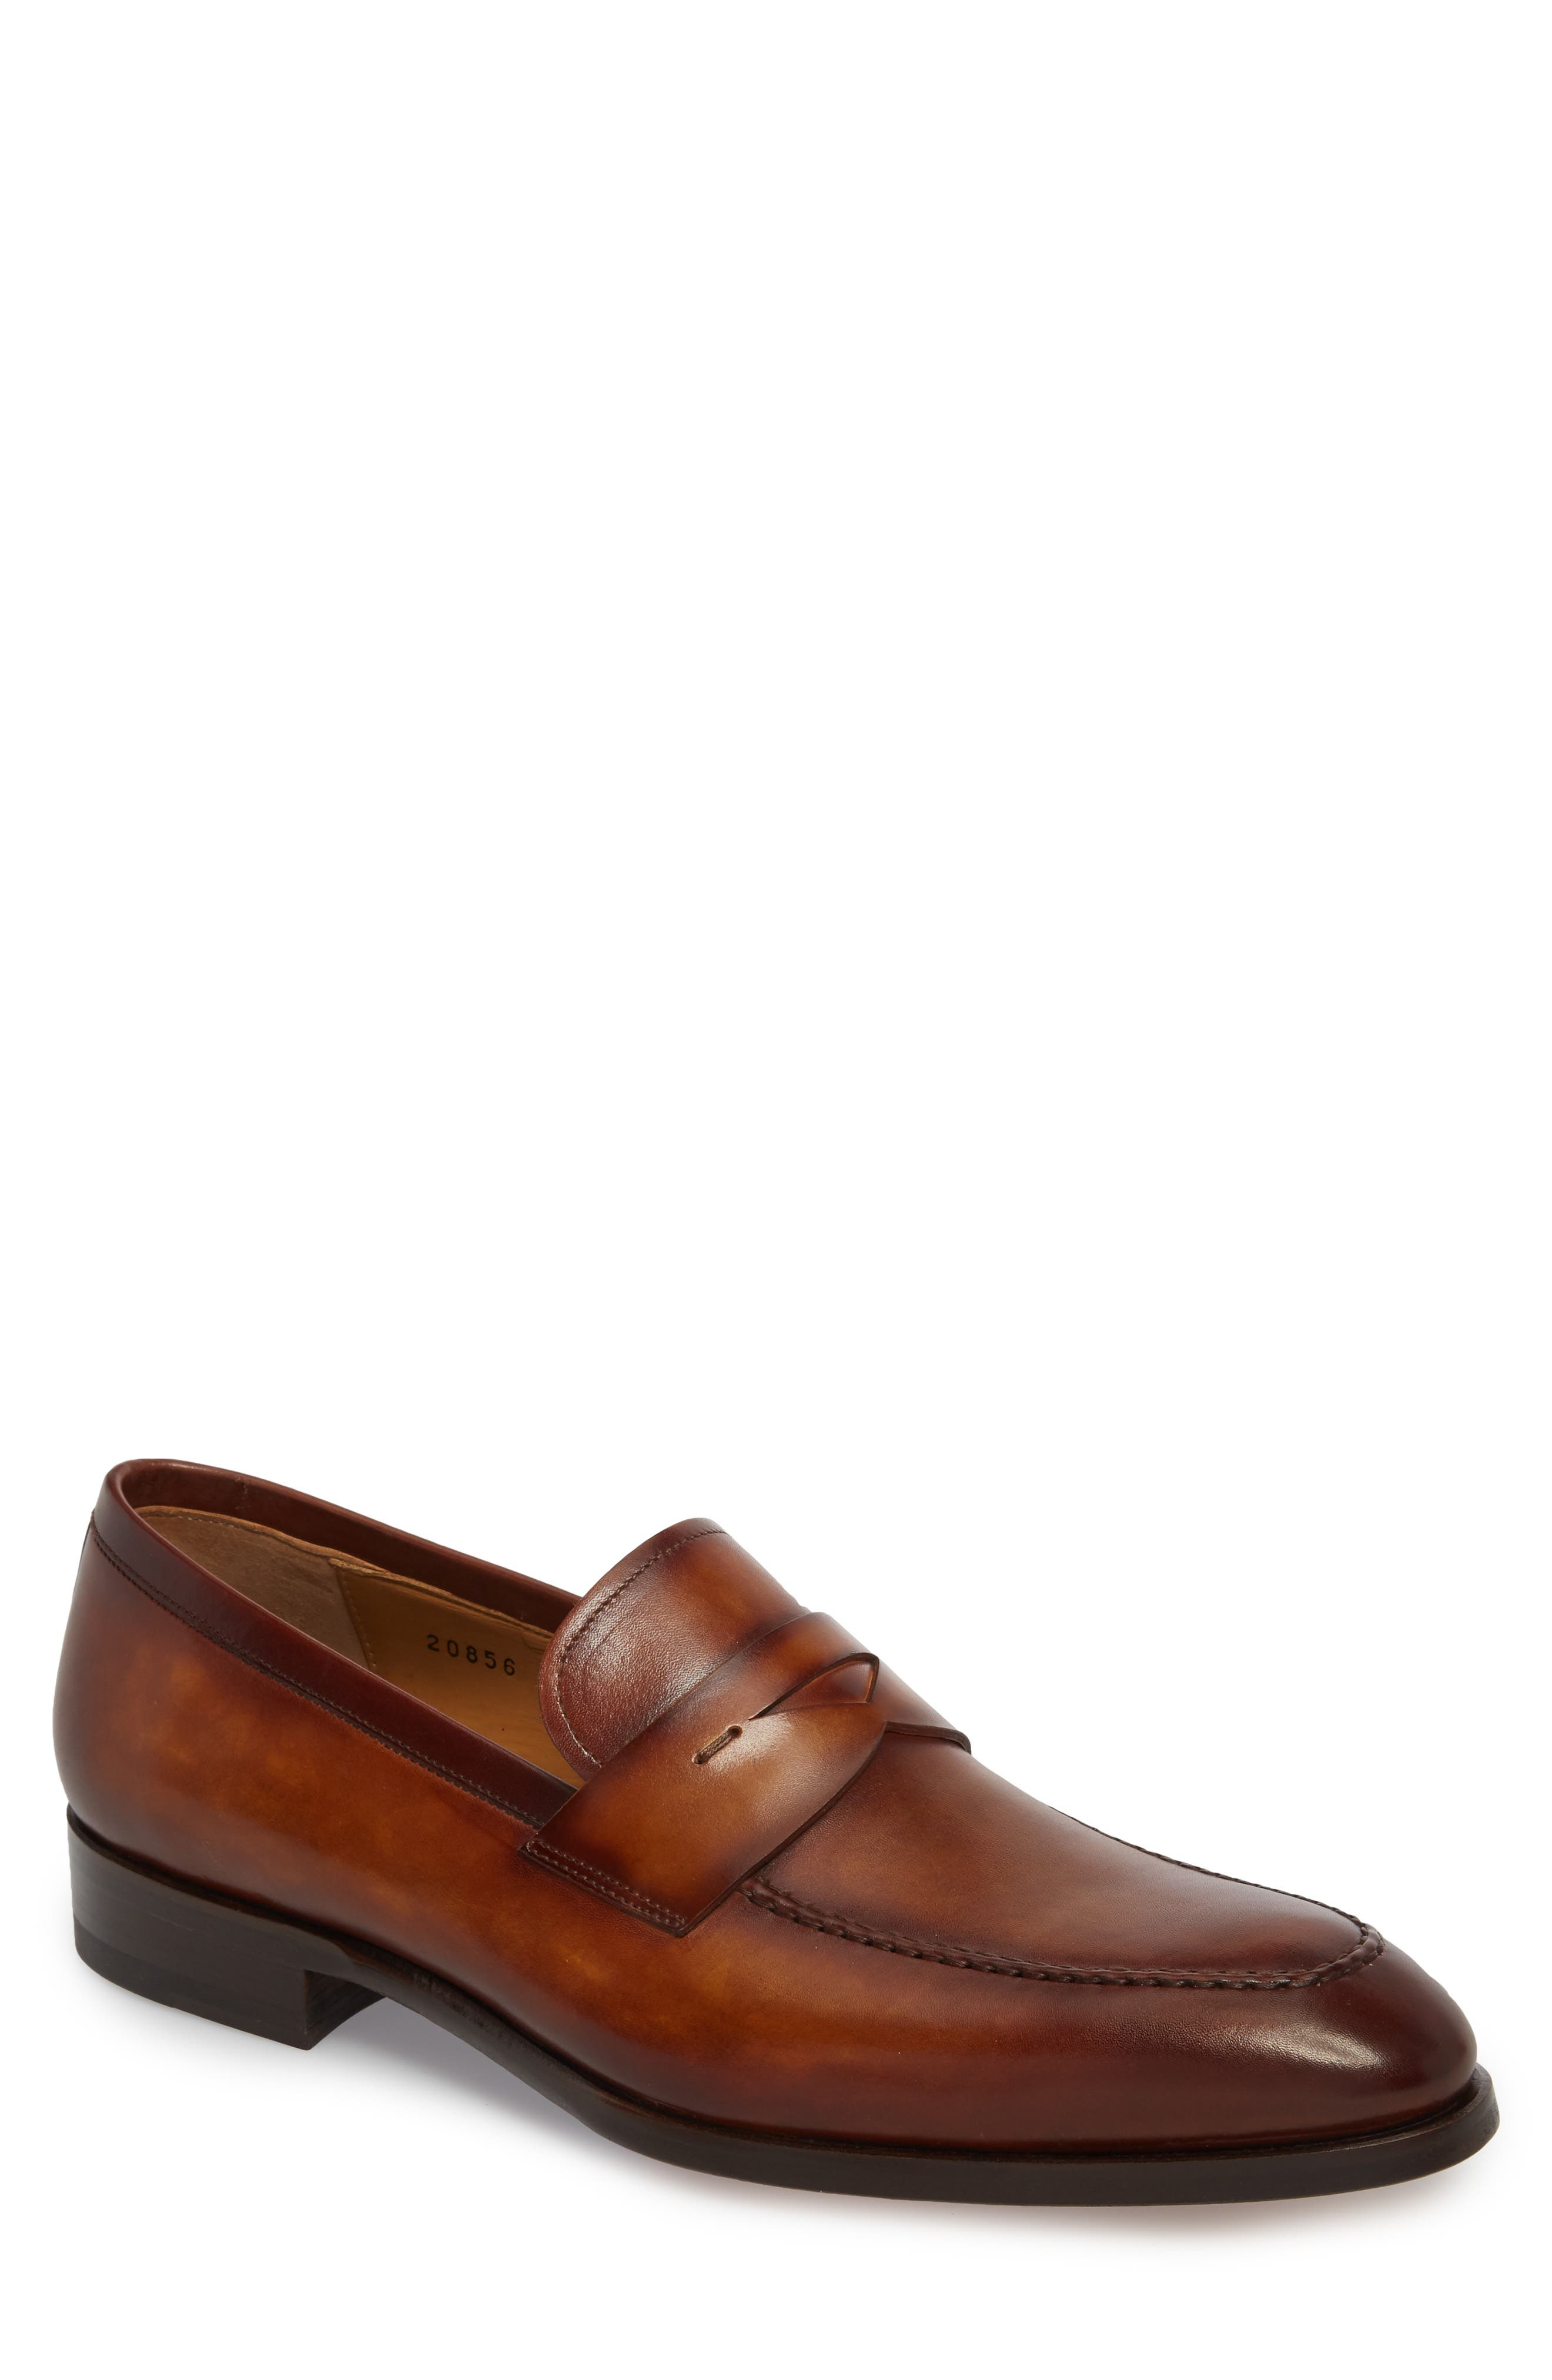 Rolly Apron Toe Penny Loafer,                             Main thumbnail 1, color,                             Brown Leather